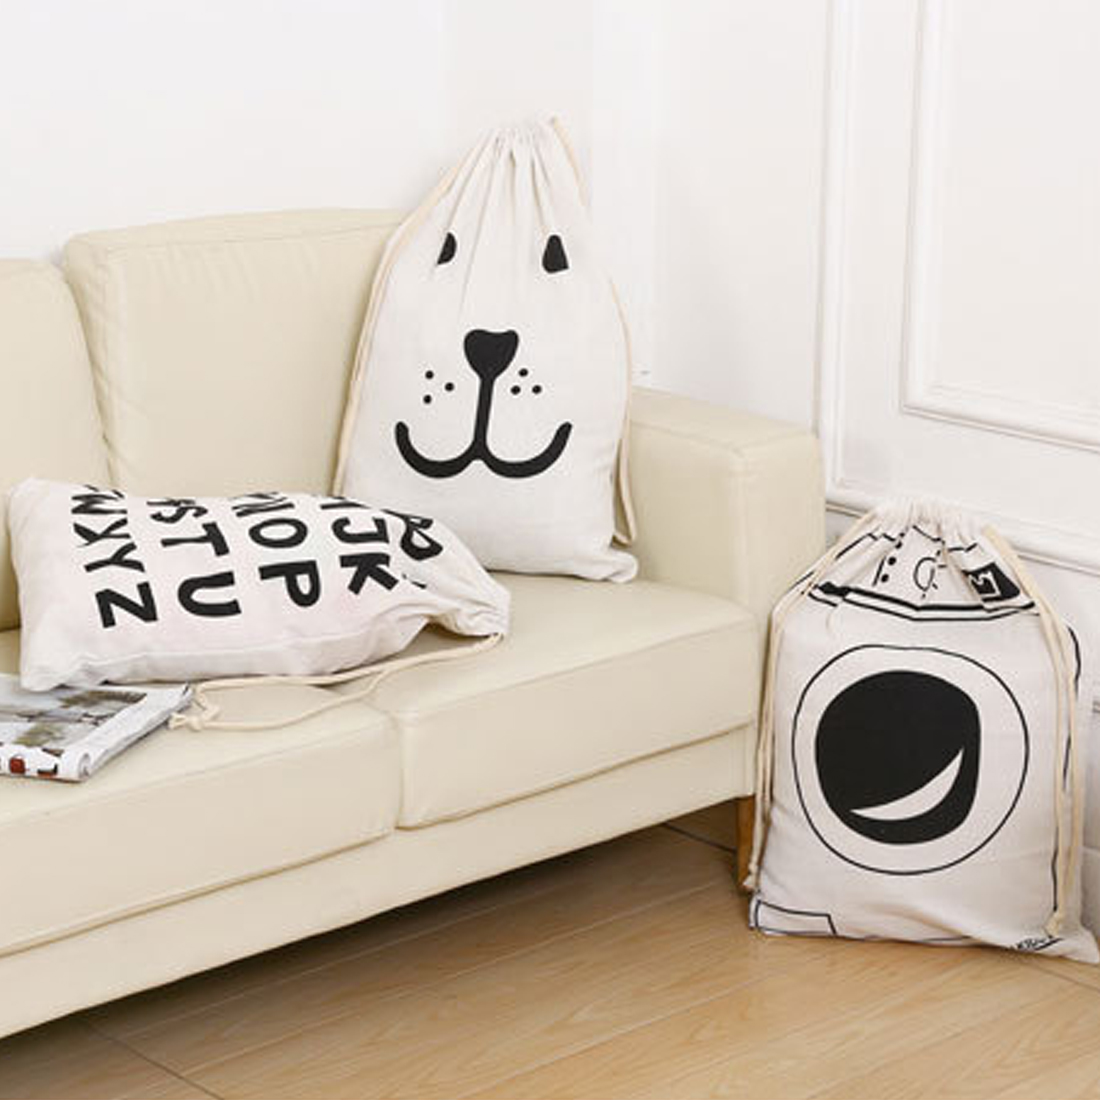 New Large Baby Toys Storage Bags Canvas Bear Laundry Hanging Drawstring Bag Household Pouch Bag Home Storage Organization